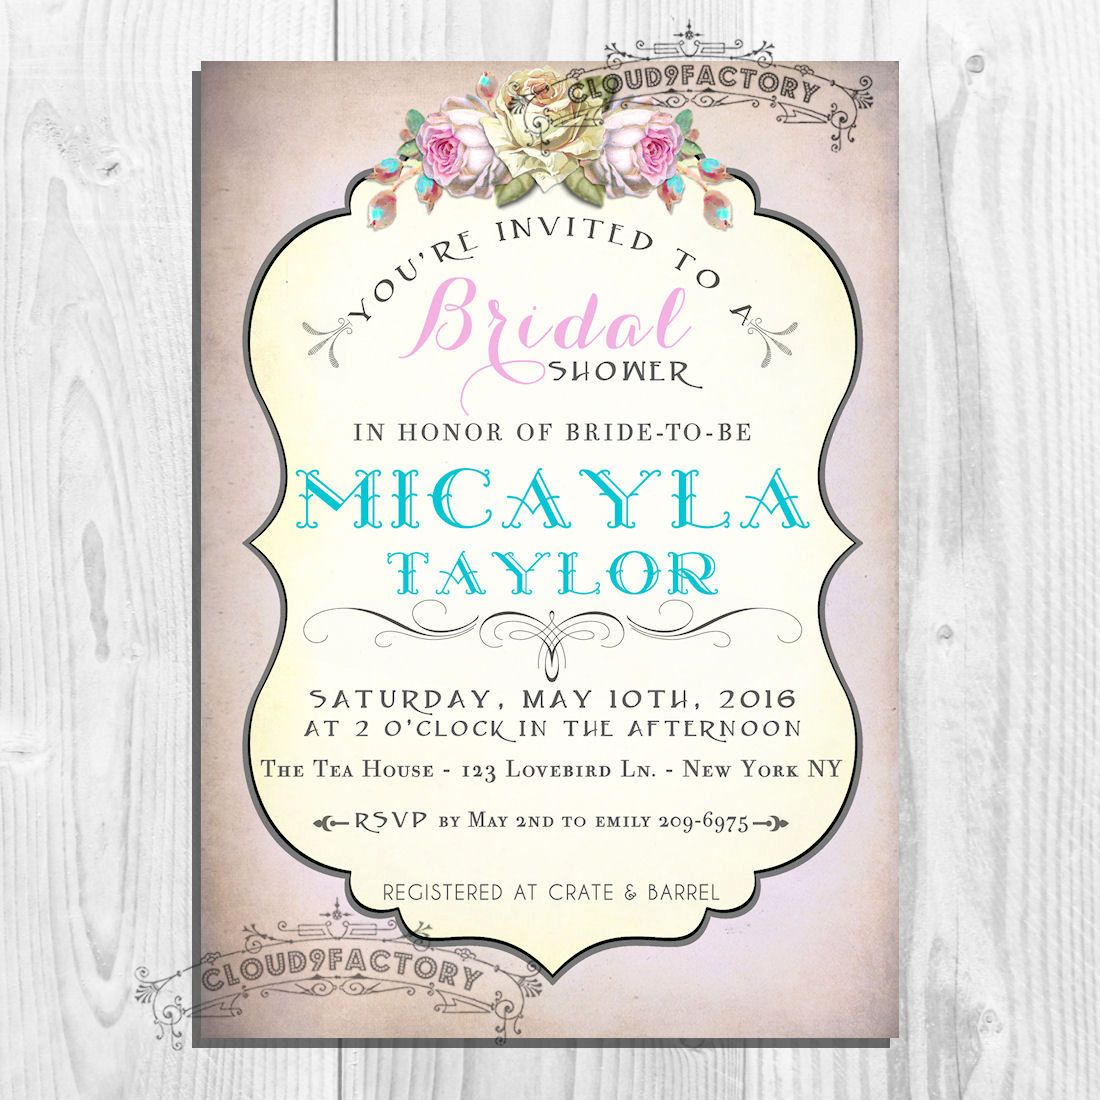 Printable bridal shower invitation digital diy invite shabby printable bridal shower invitation digital diy invite shabby chic garden party fancy rustic filmwisefo Image collections